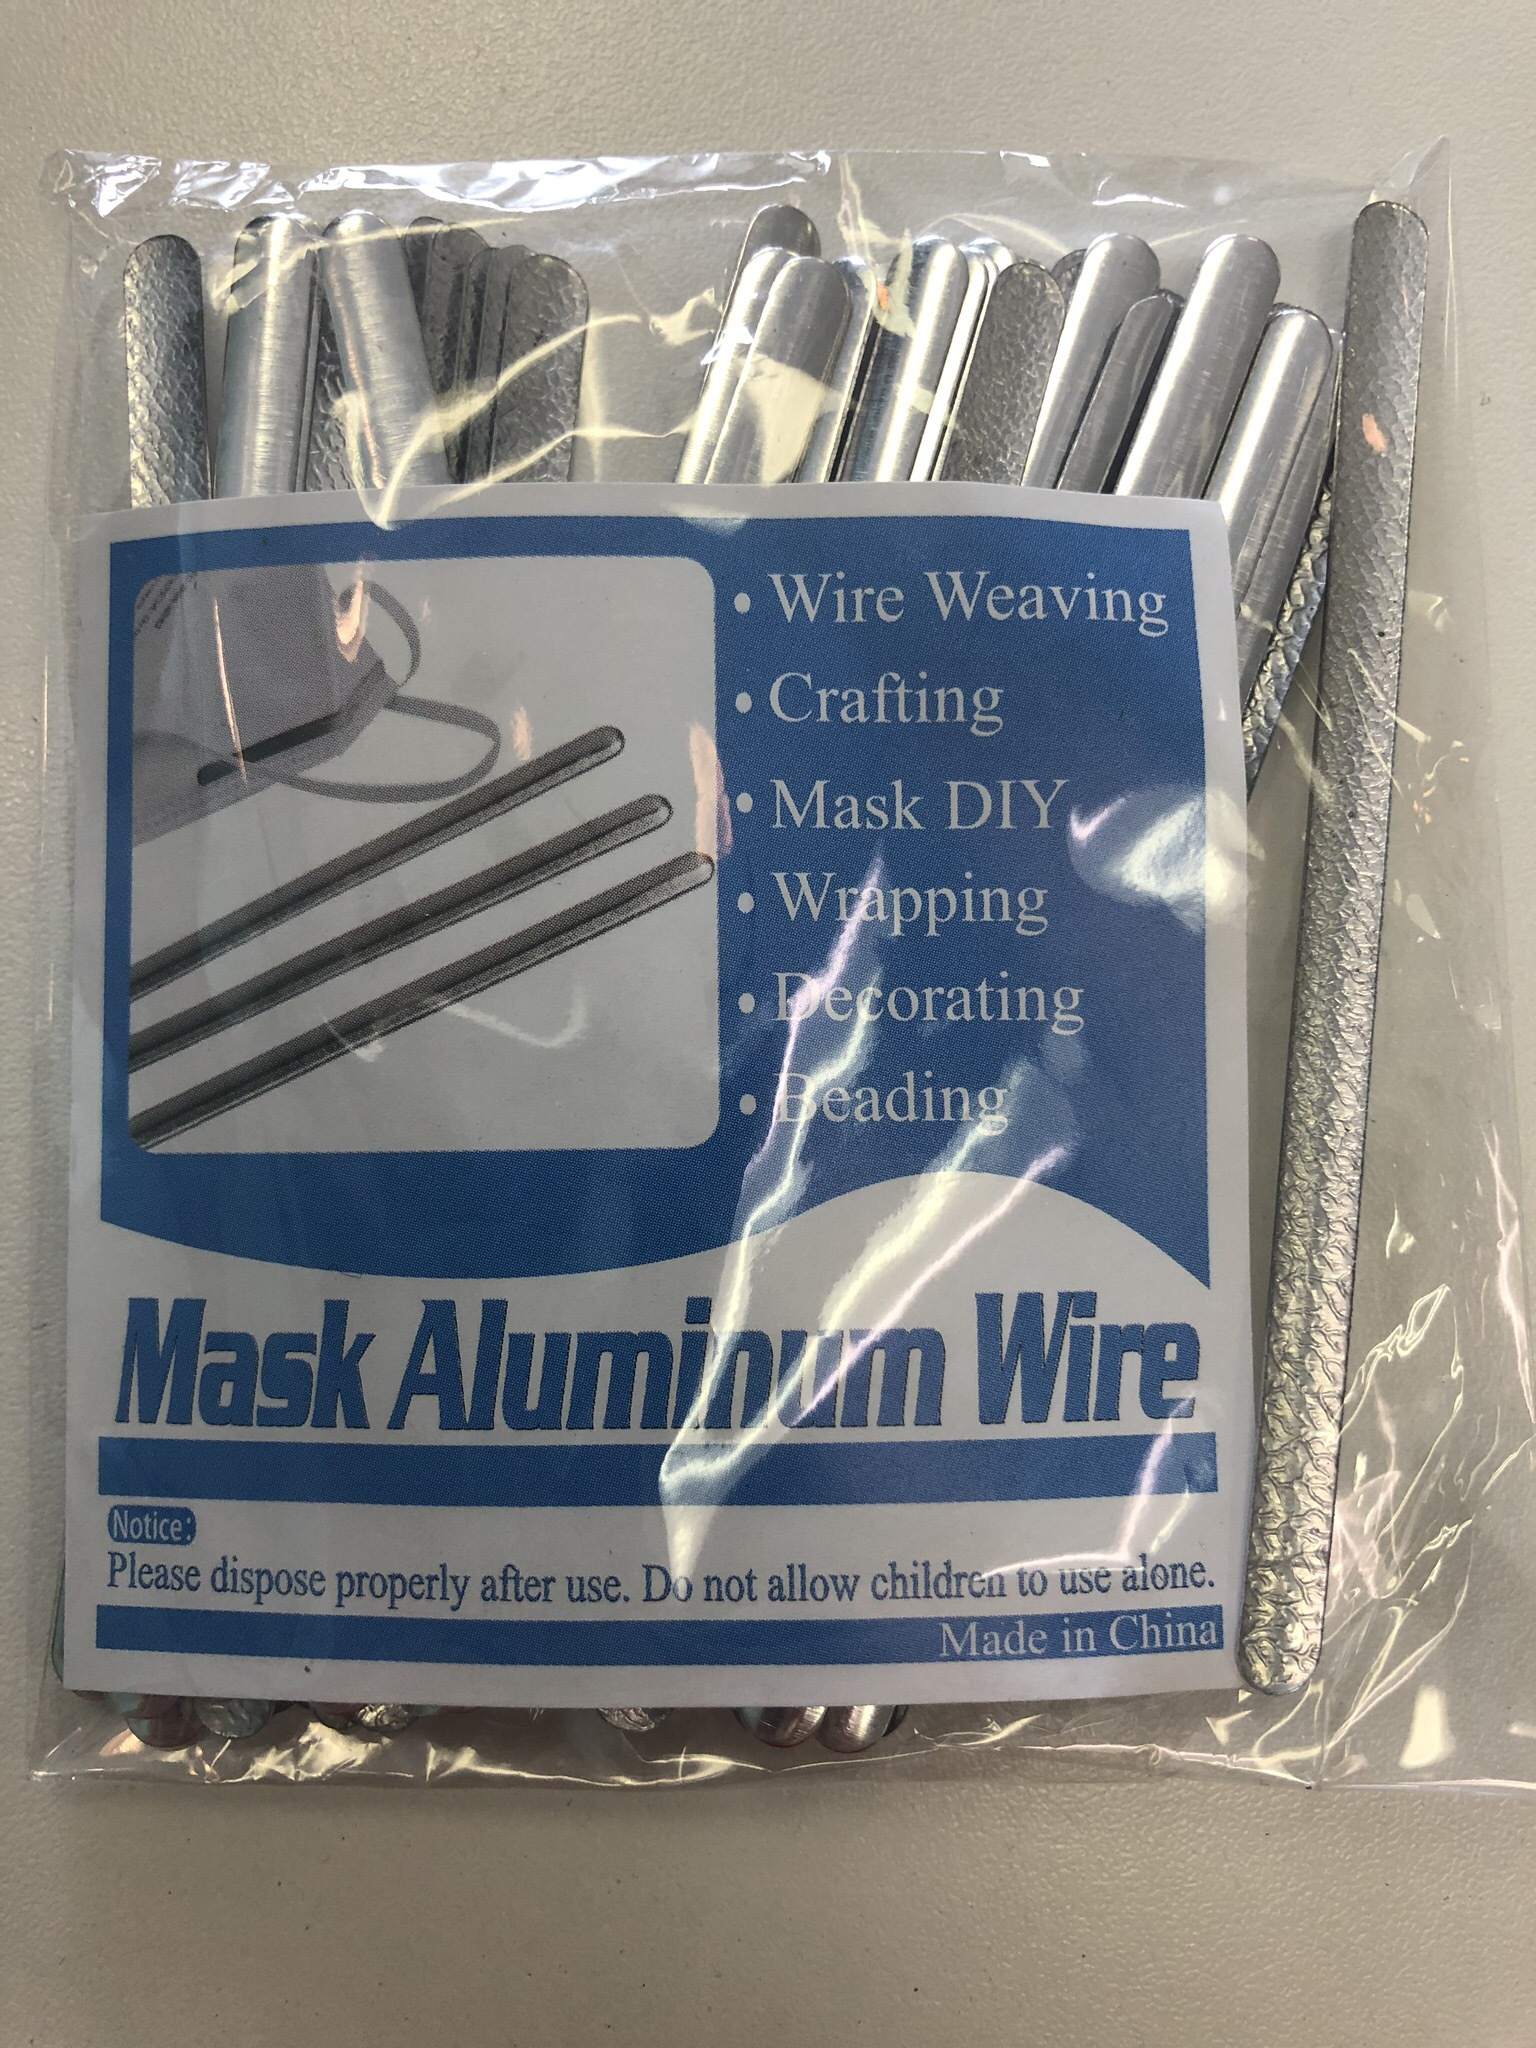 Flexible Mask Wires - 10 Pack 55901